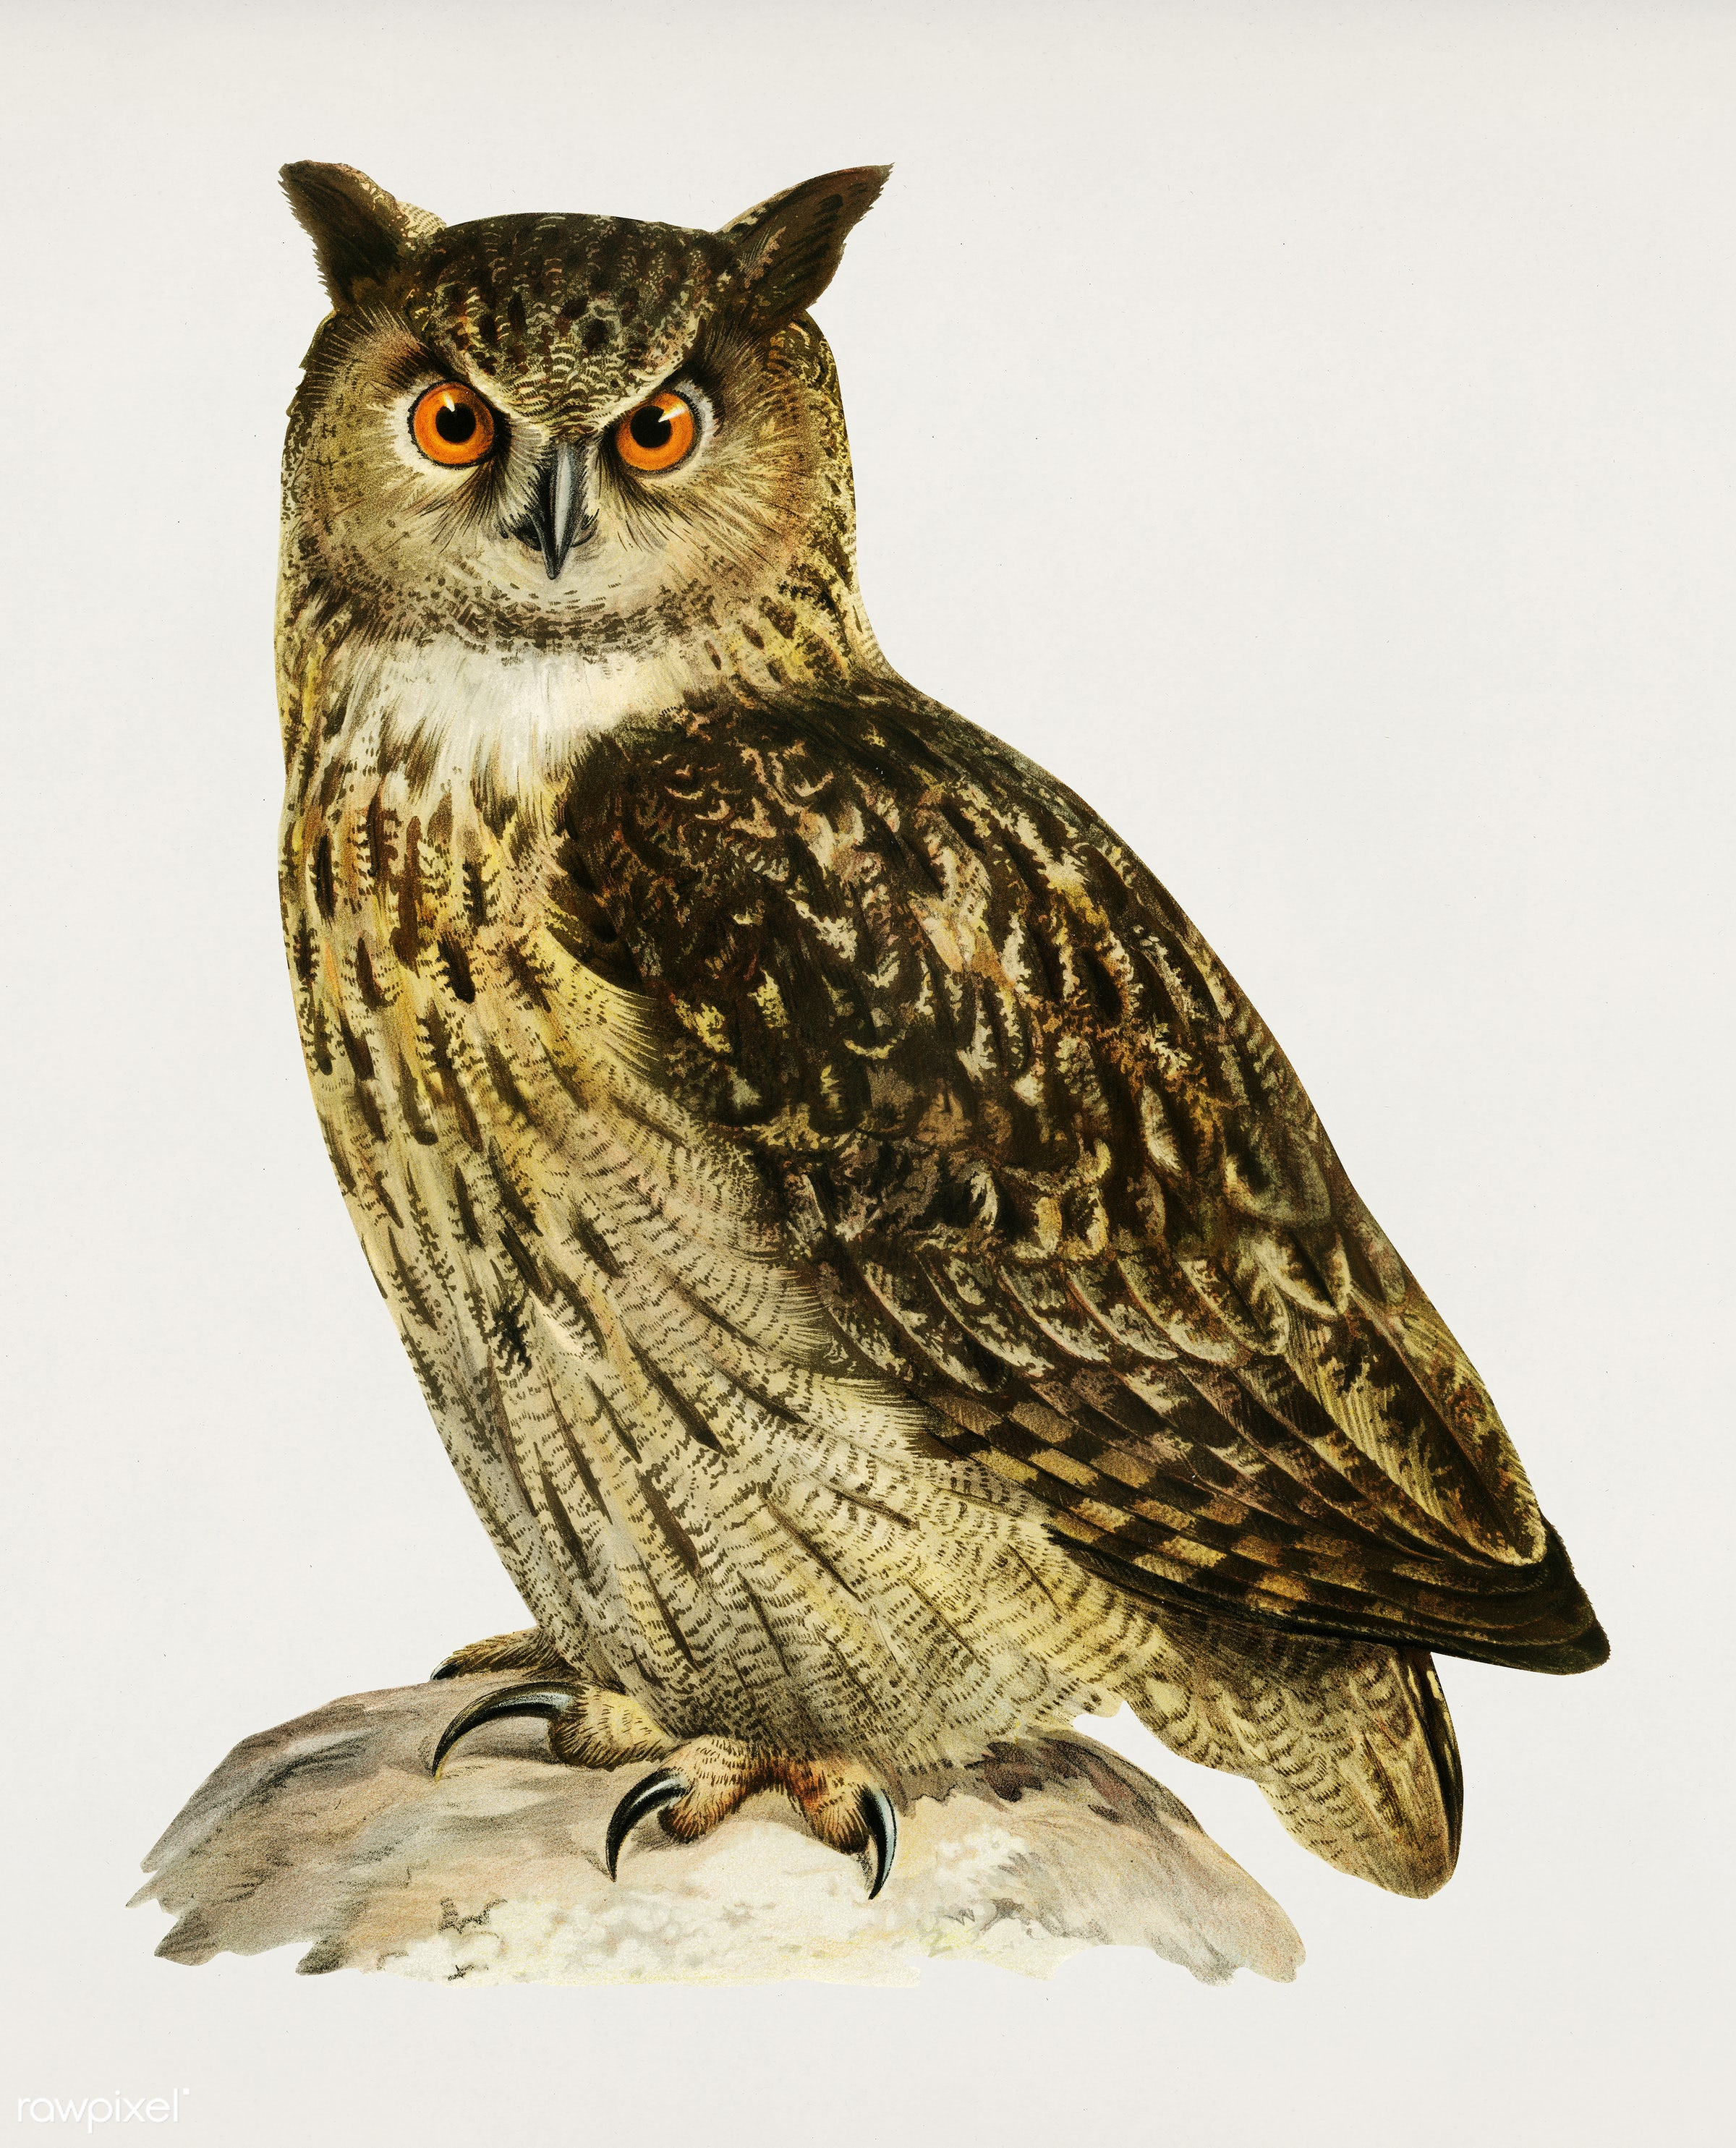 Eurasian eagle-owl (BUBO BUBO) illustrated by the von Wright brothers. Digitally enhanced from our own 1929 folio version of...